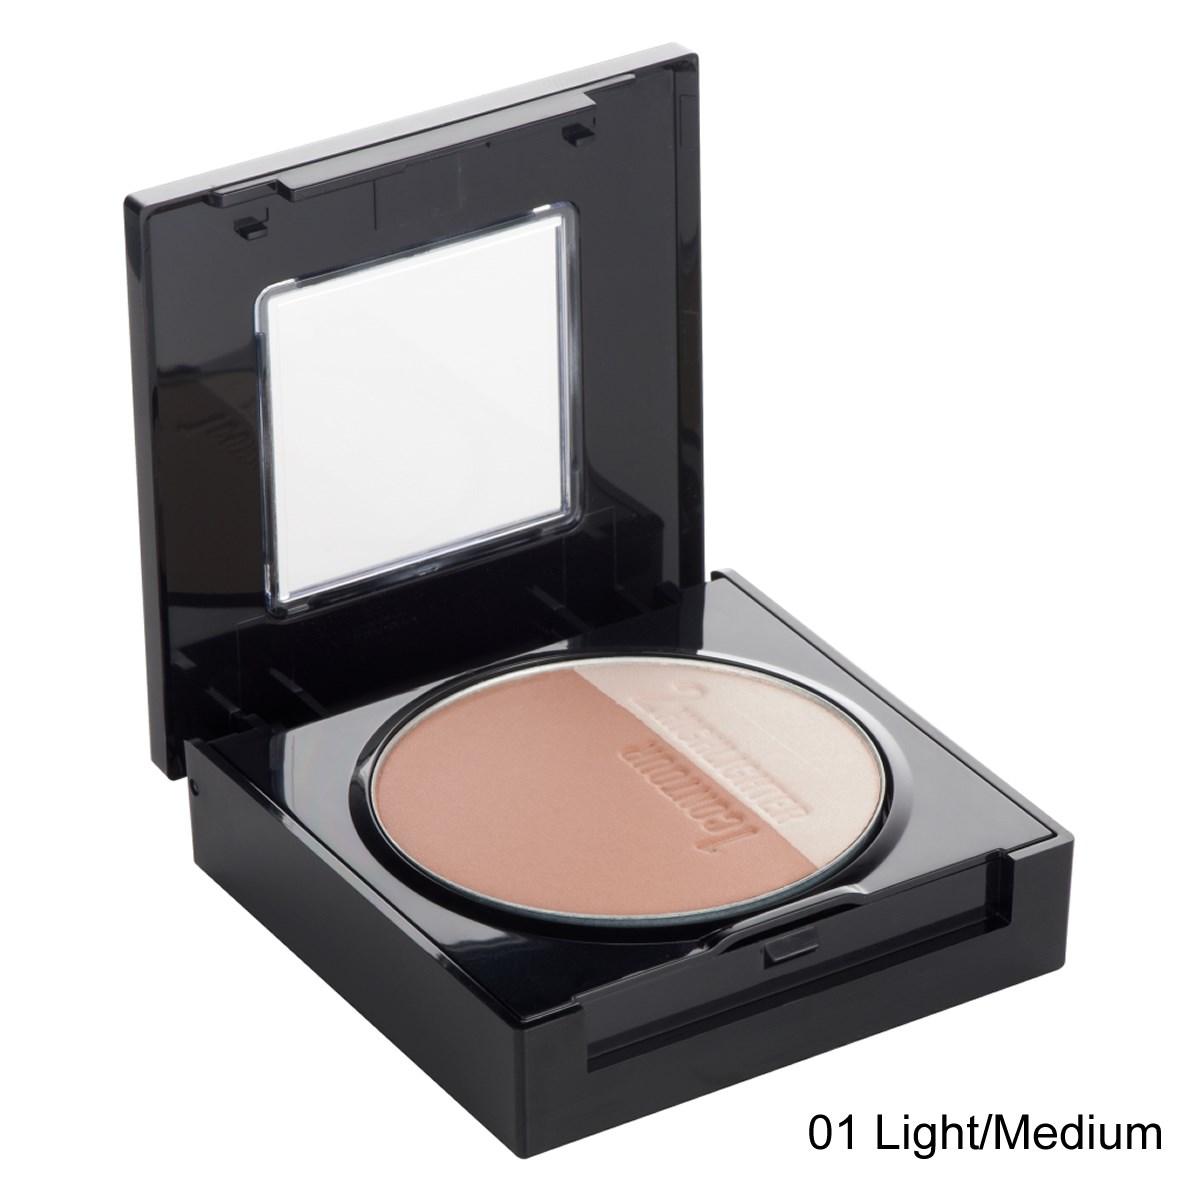 Maybelline Master Sculpt Contouring Powder